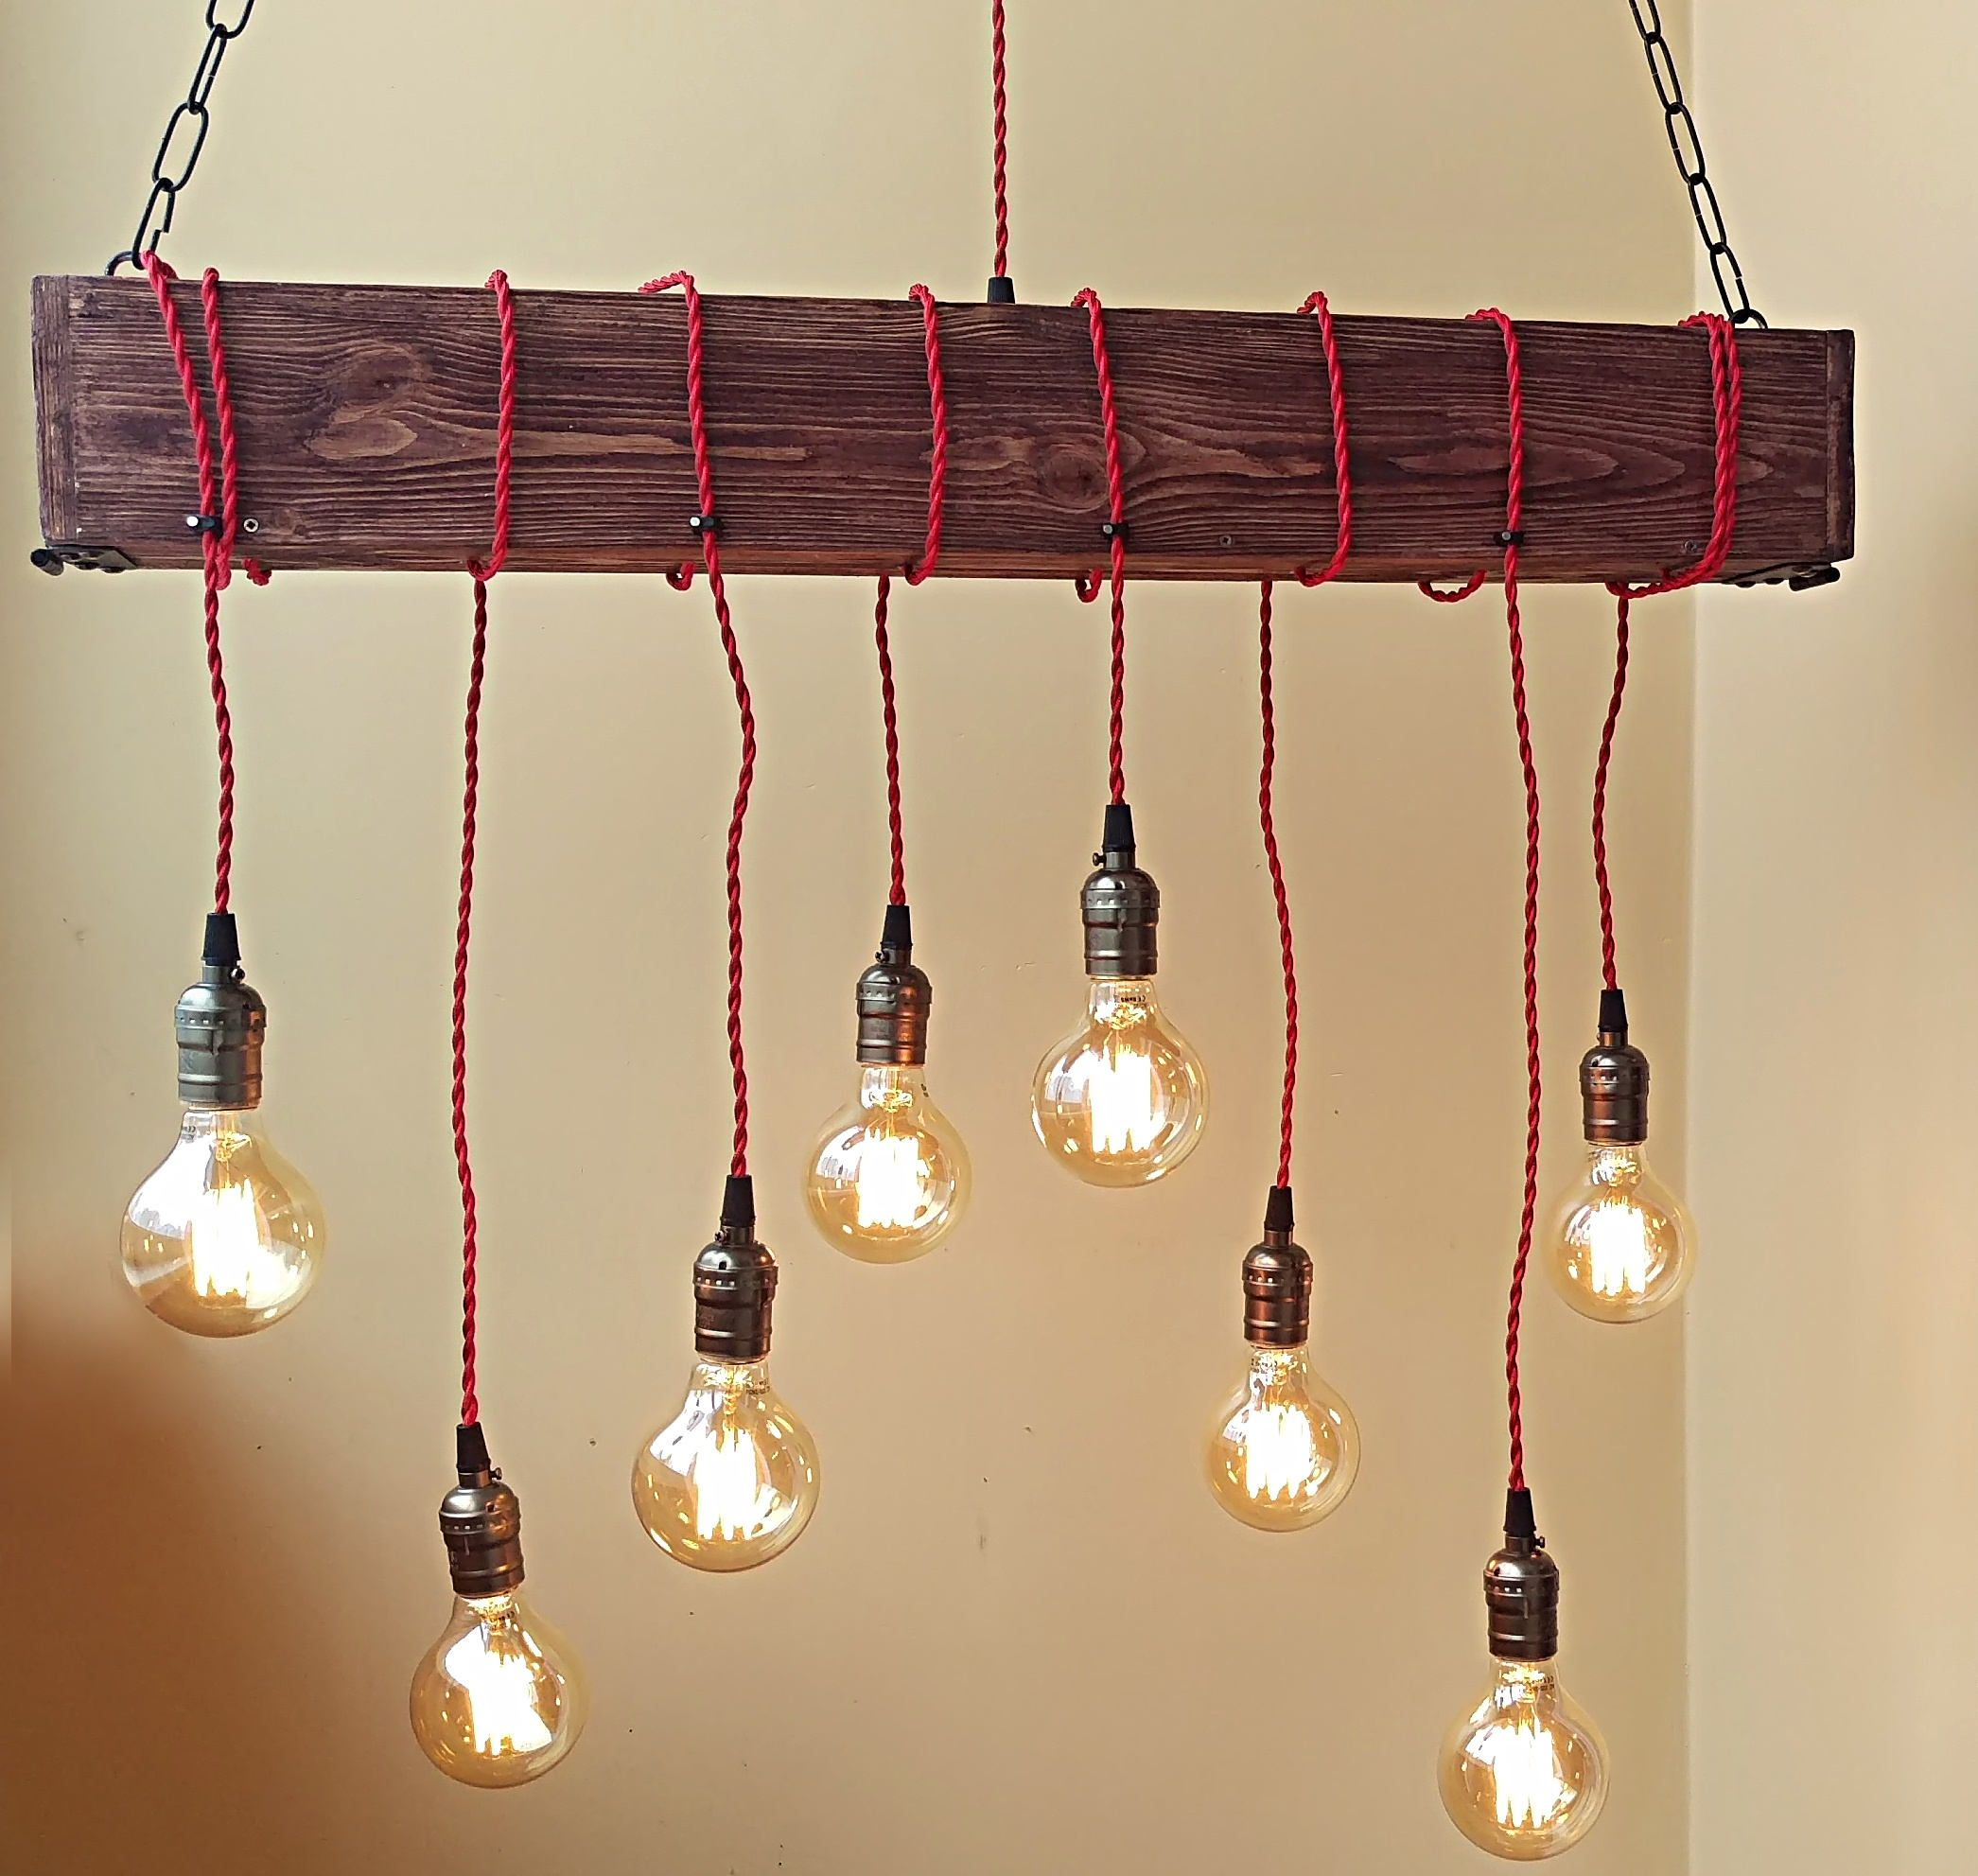 Farmhouse pendant hanging lamp rustic handmade pendant lights